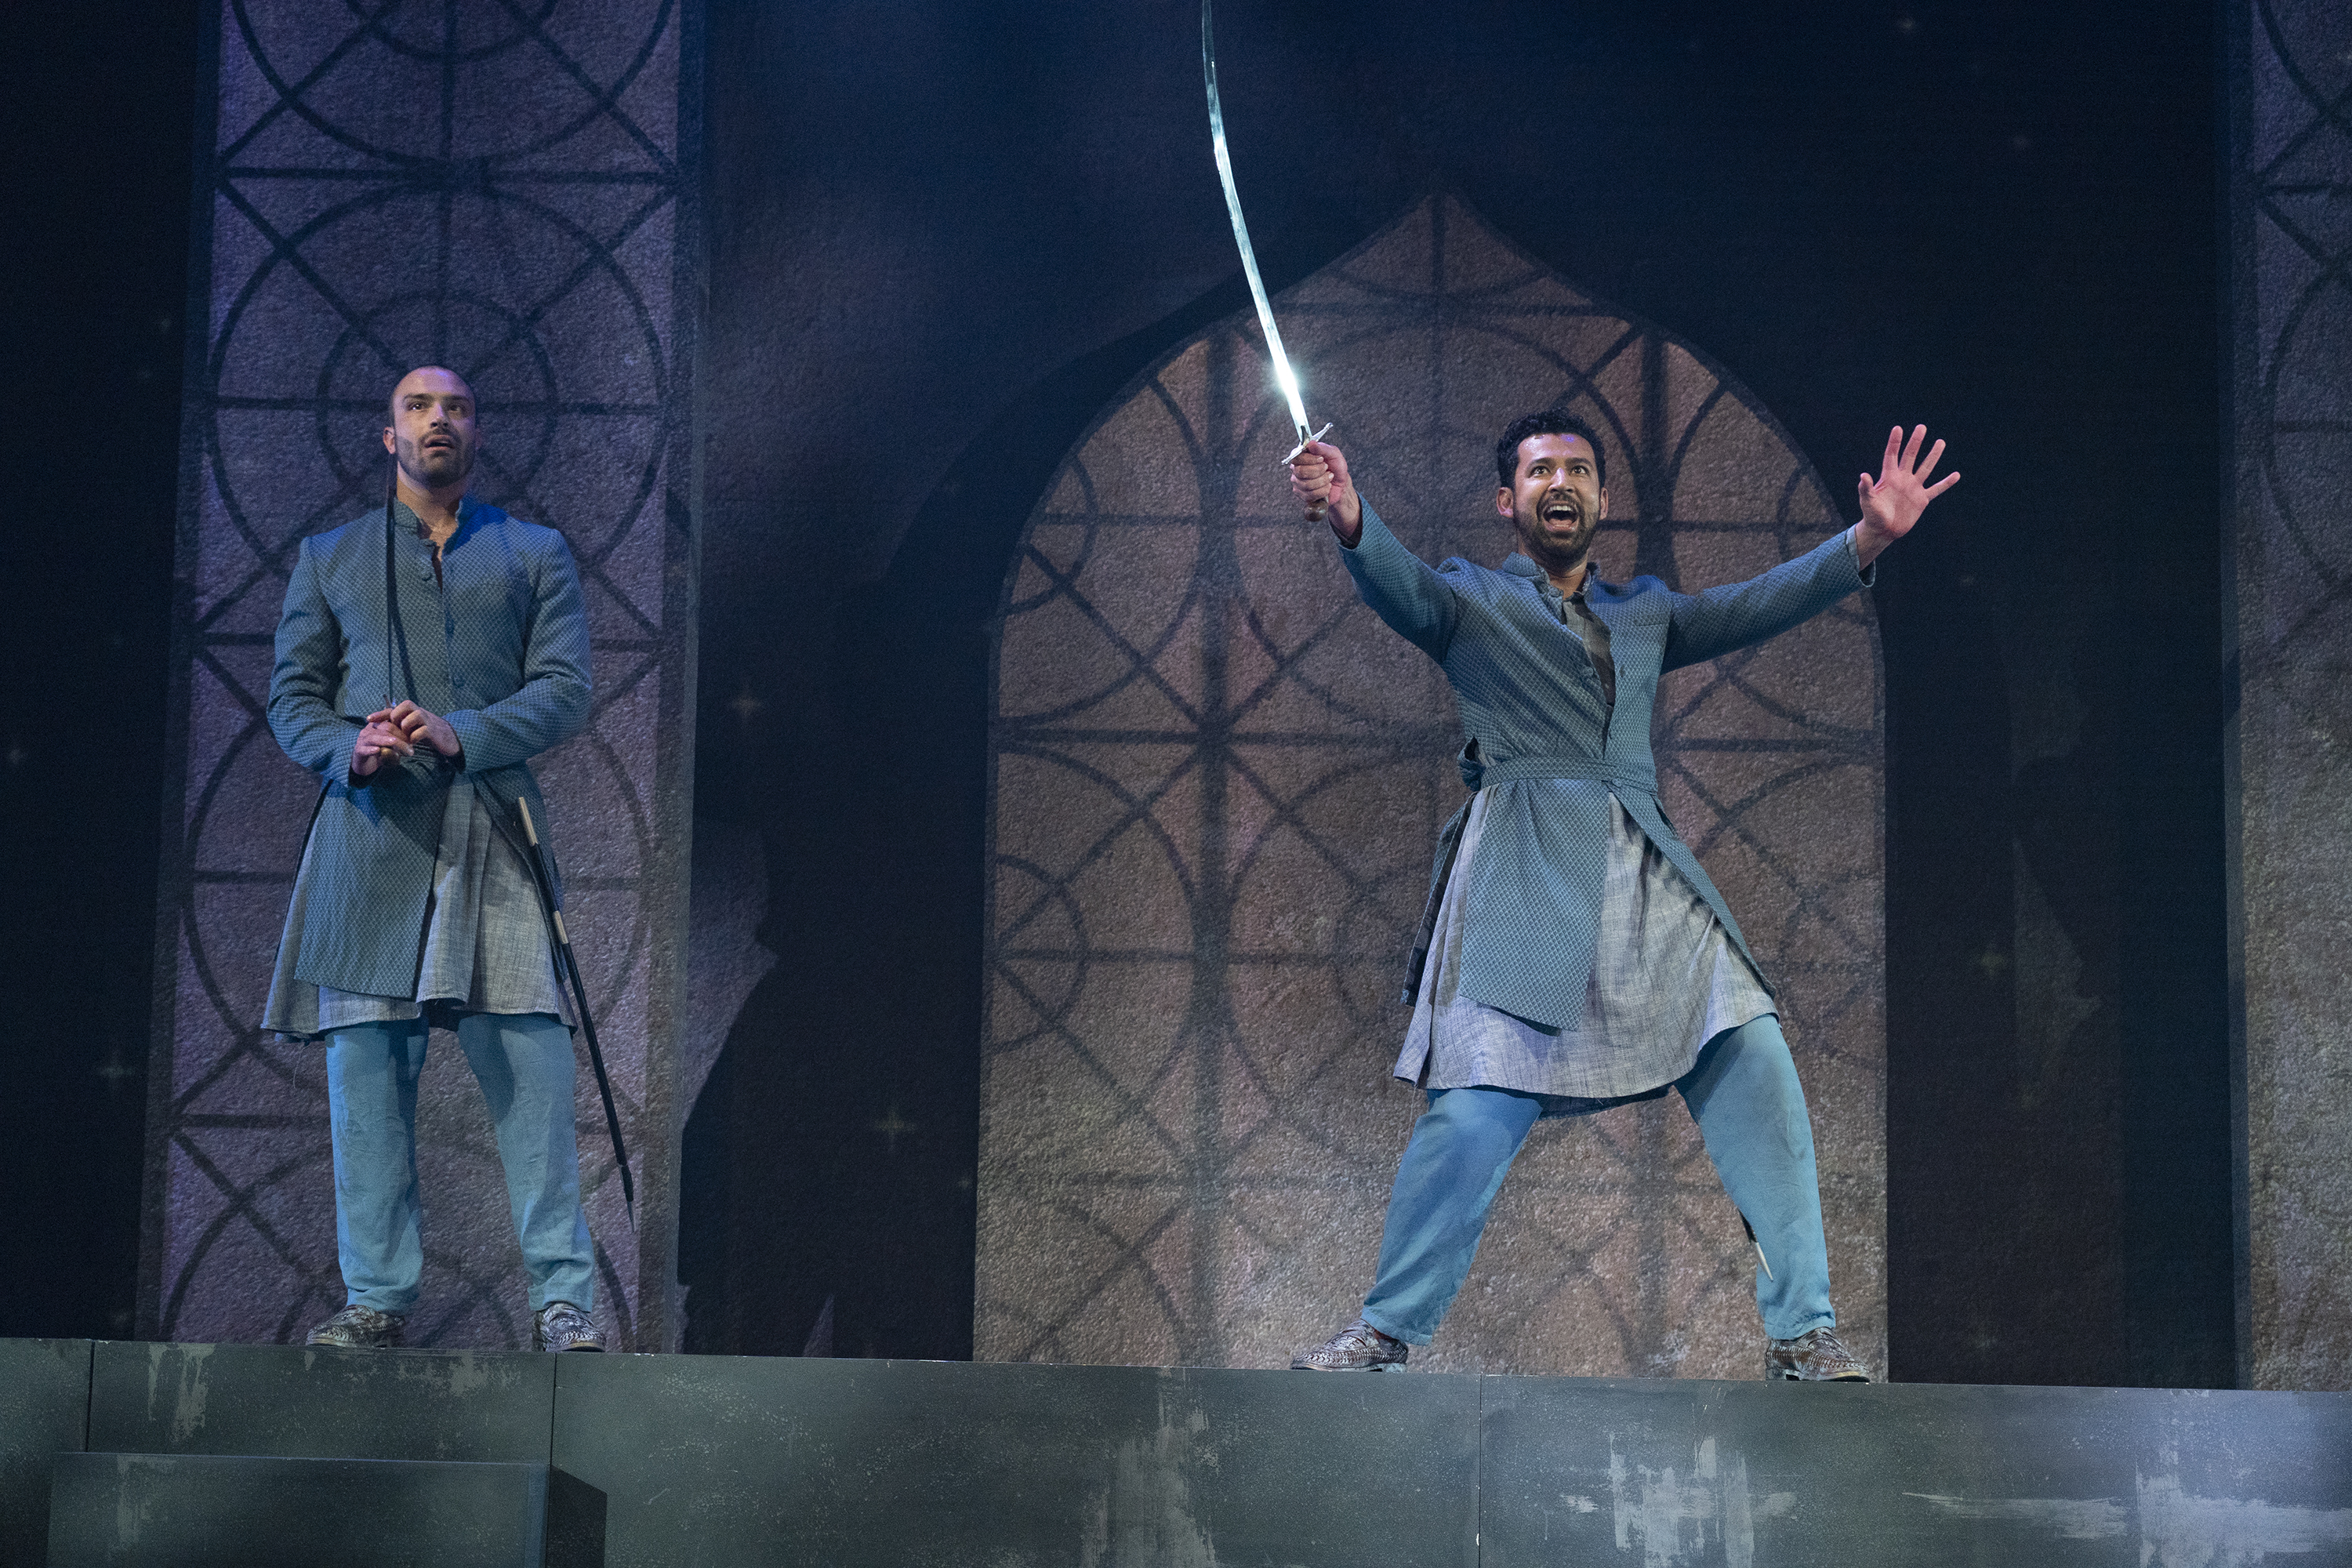 The play 'Guards at the Taj' unfolds through the viewpoint of two guards who stand sentinel outside the Taj Mahal before it is unveiled. Photo courtesy: Singapore Repertory Theatre